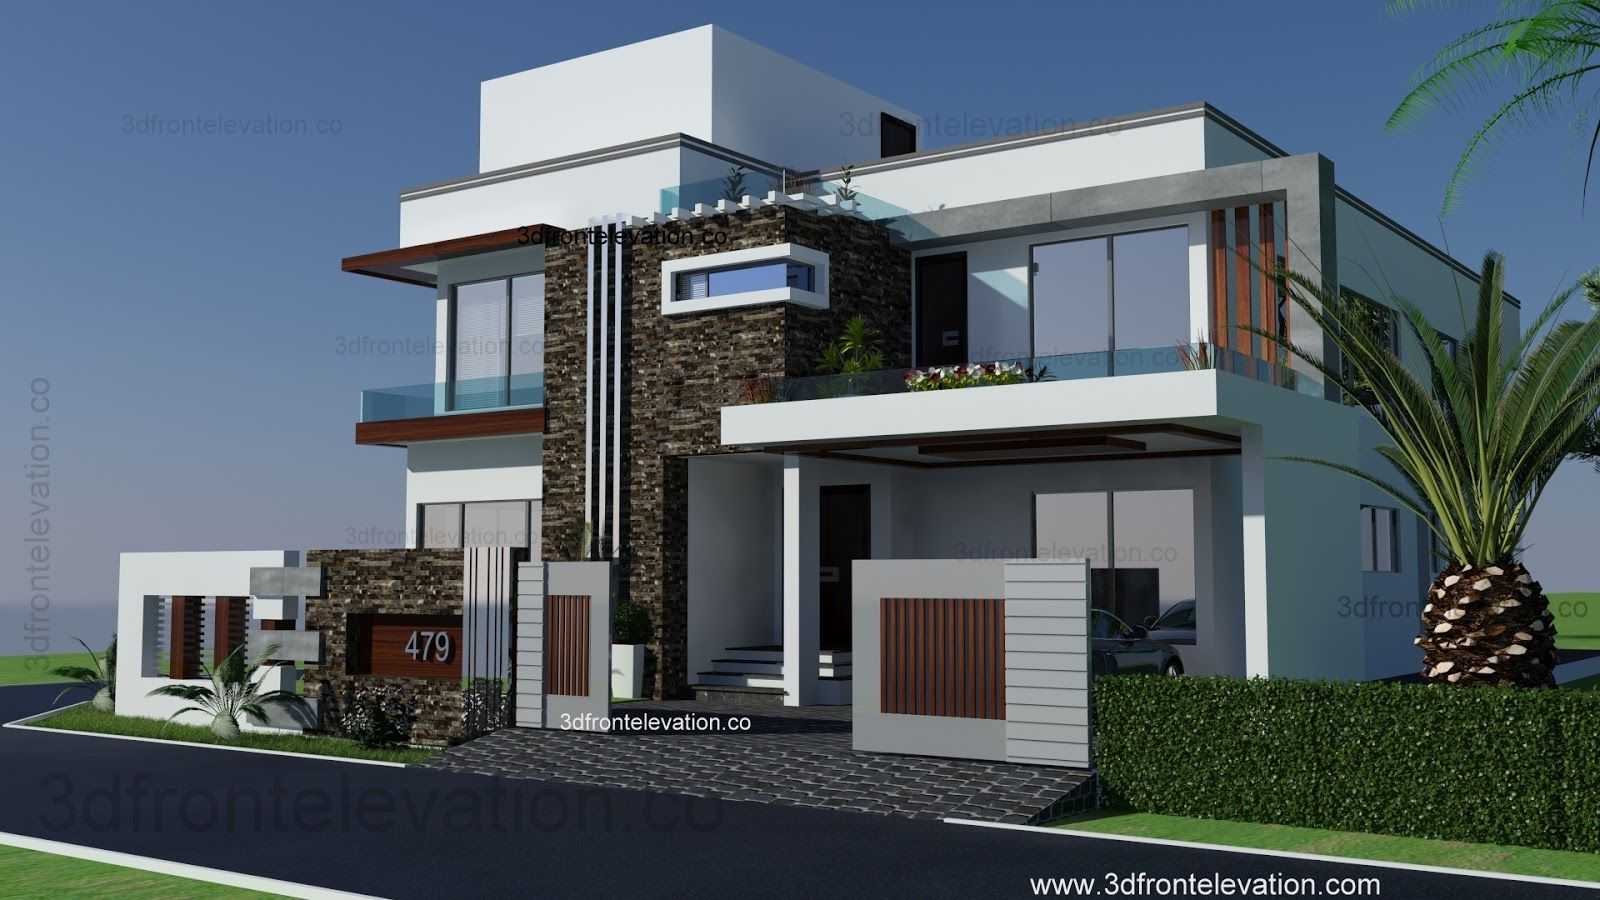 3d front elevation com portfolio casa pinterest